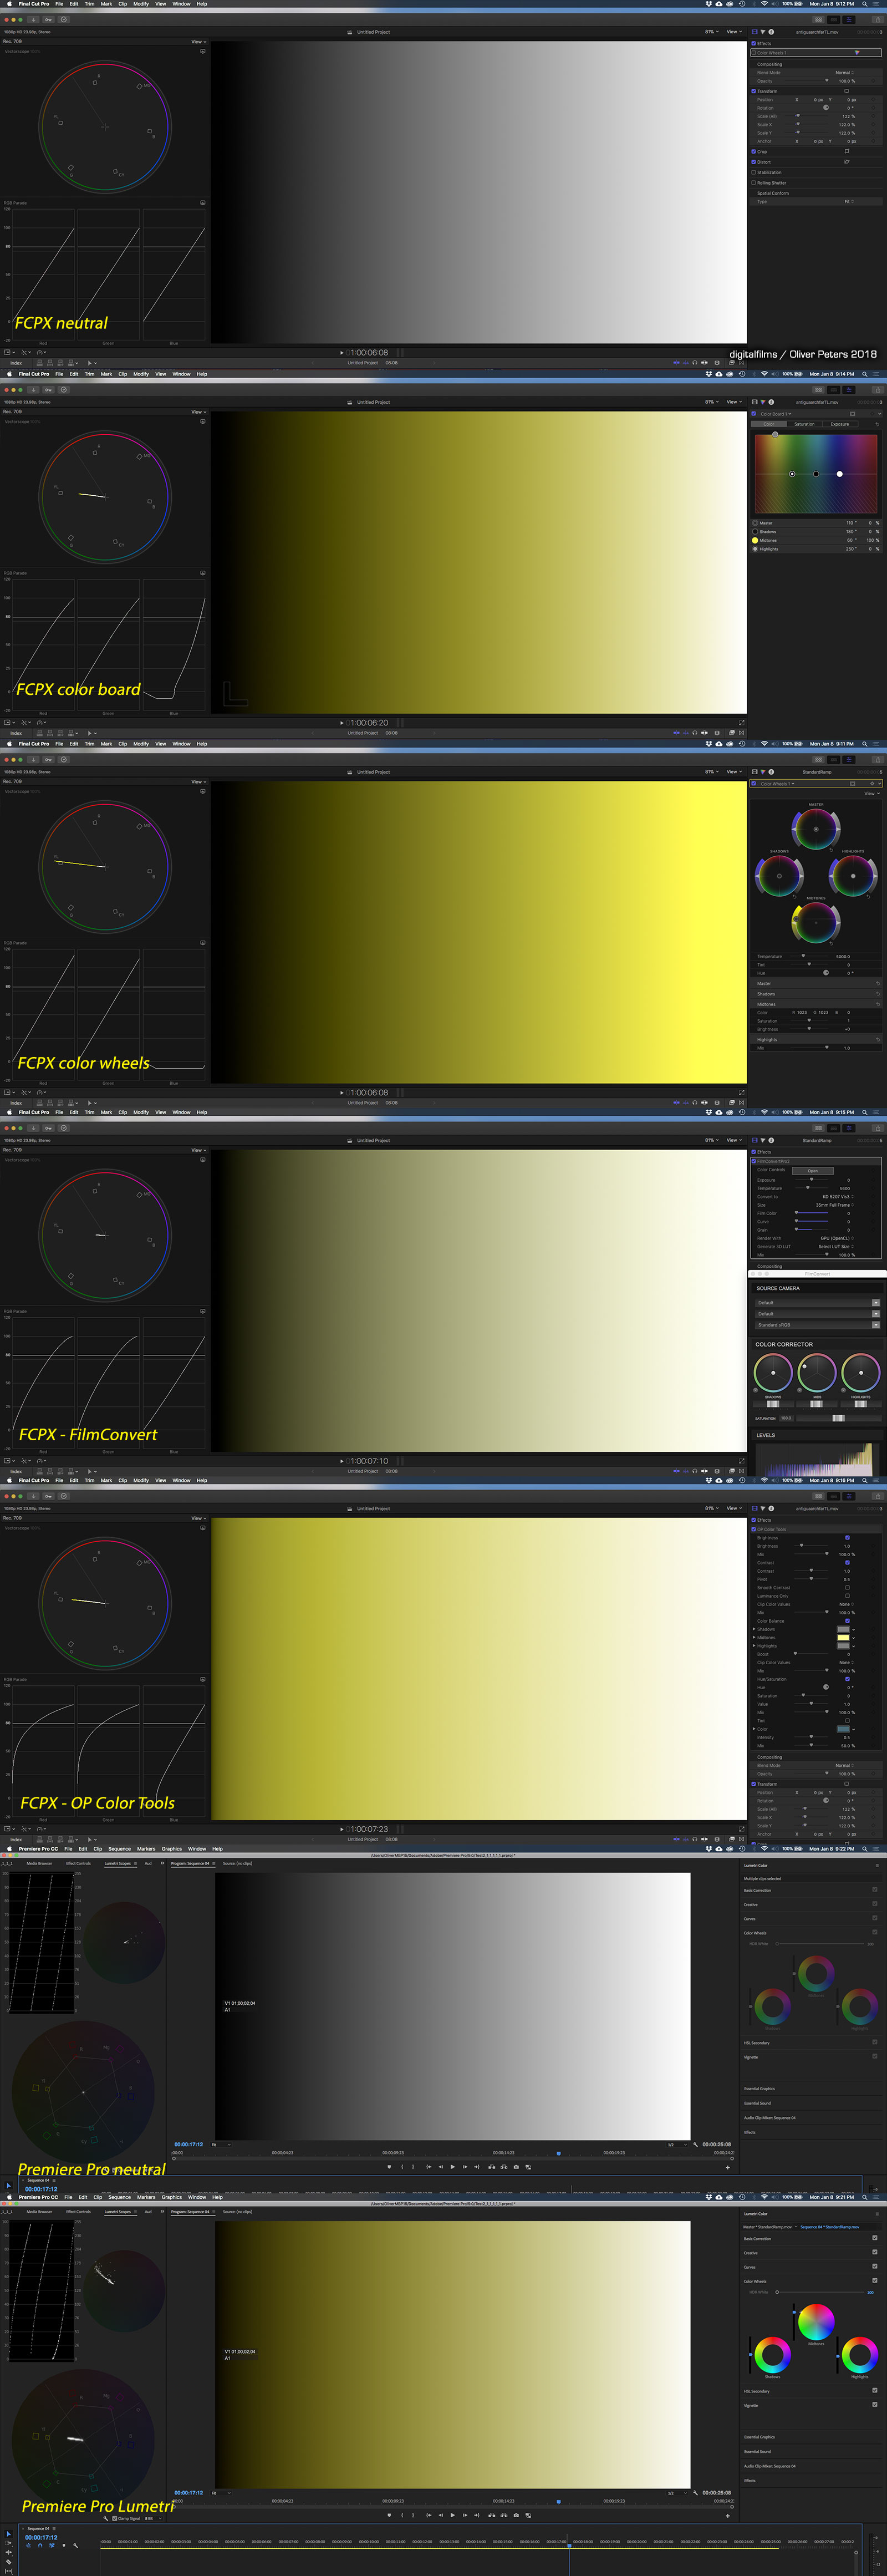 One other issue to note, is that the Color Wheels offer an extraordinarily  control range. The hue offset control RGB intensity values go from 0  (center of ...